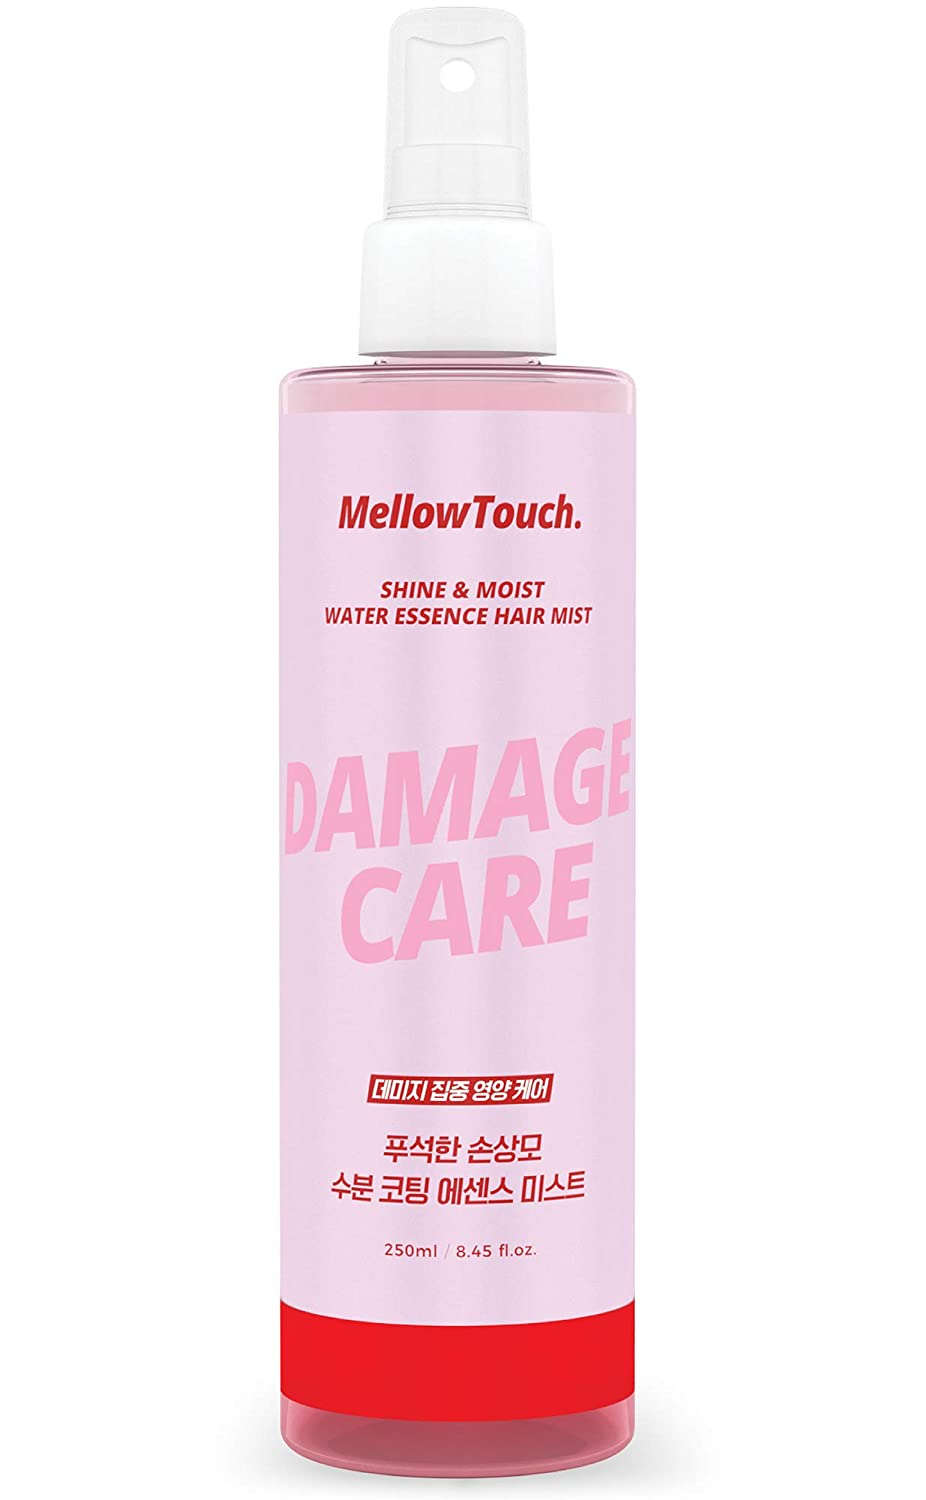 Mellow Touch Shine & Moist Water Essence Hair Mist, Leave In Treatment Spray with Calamus Root and Abyssinian Oil, Product of Korea - 8.45 fl. oz